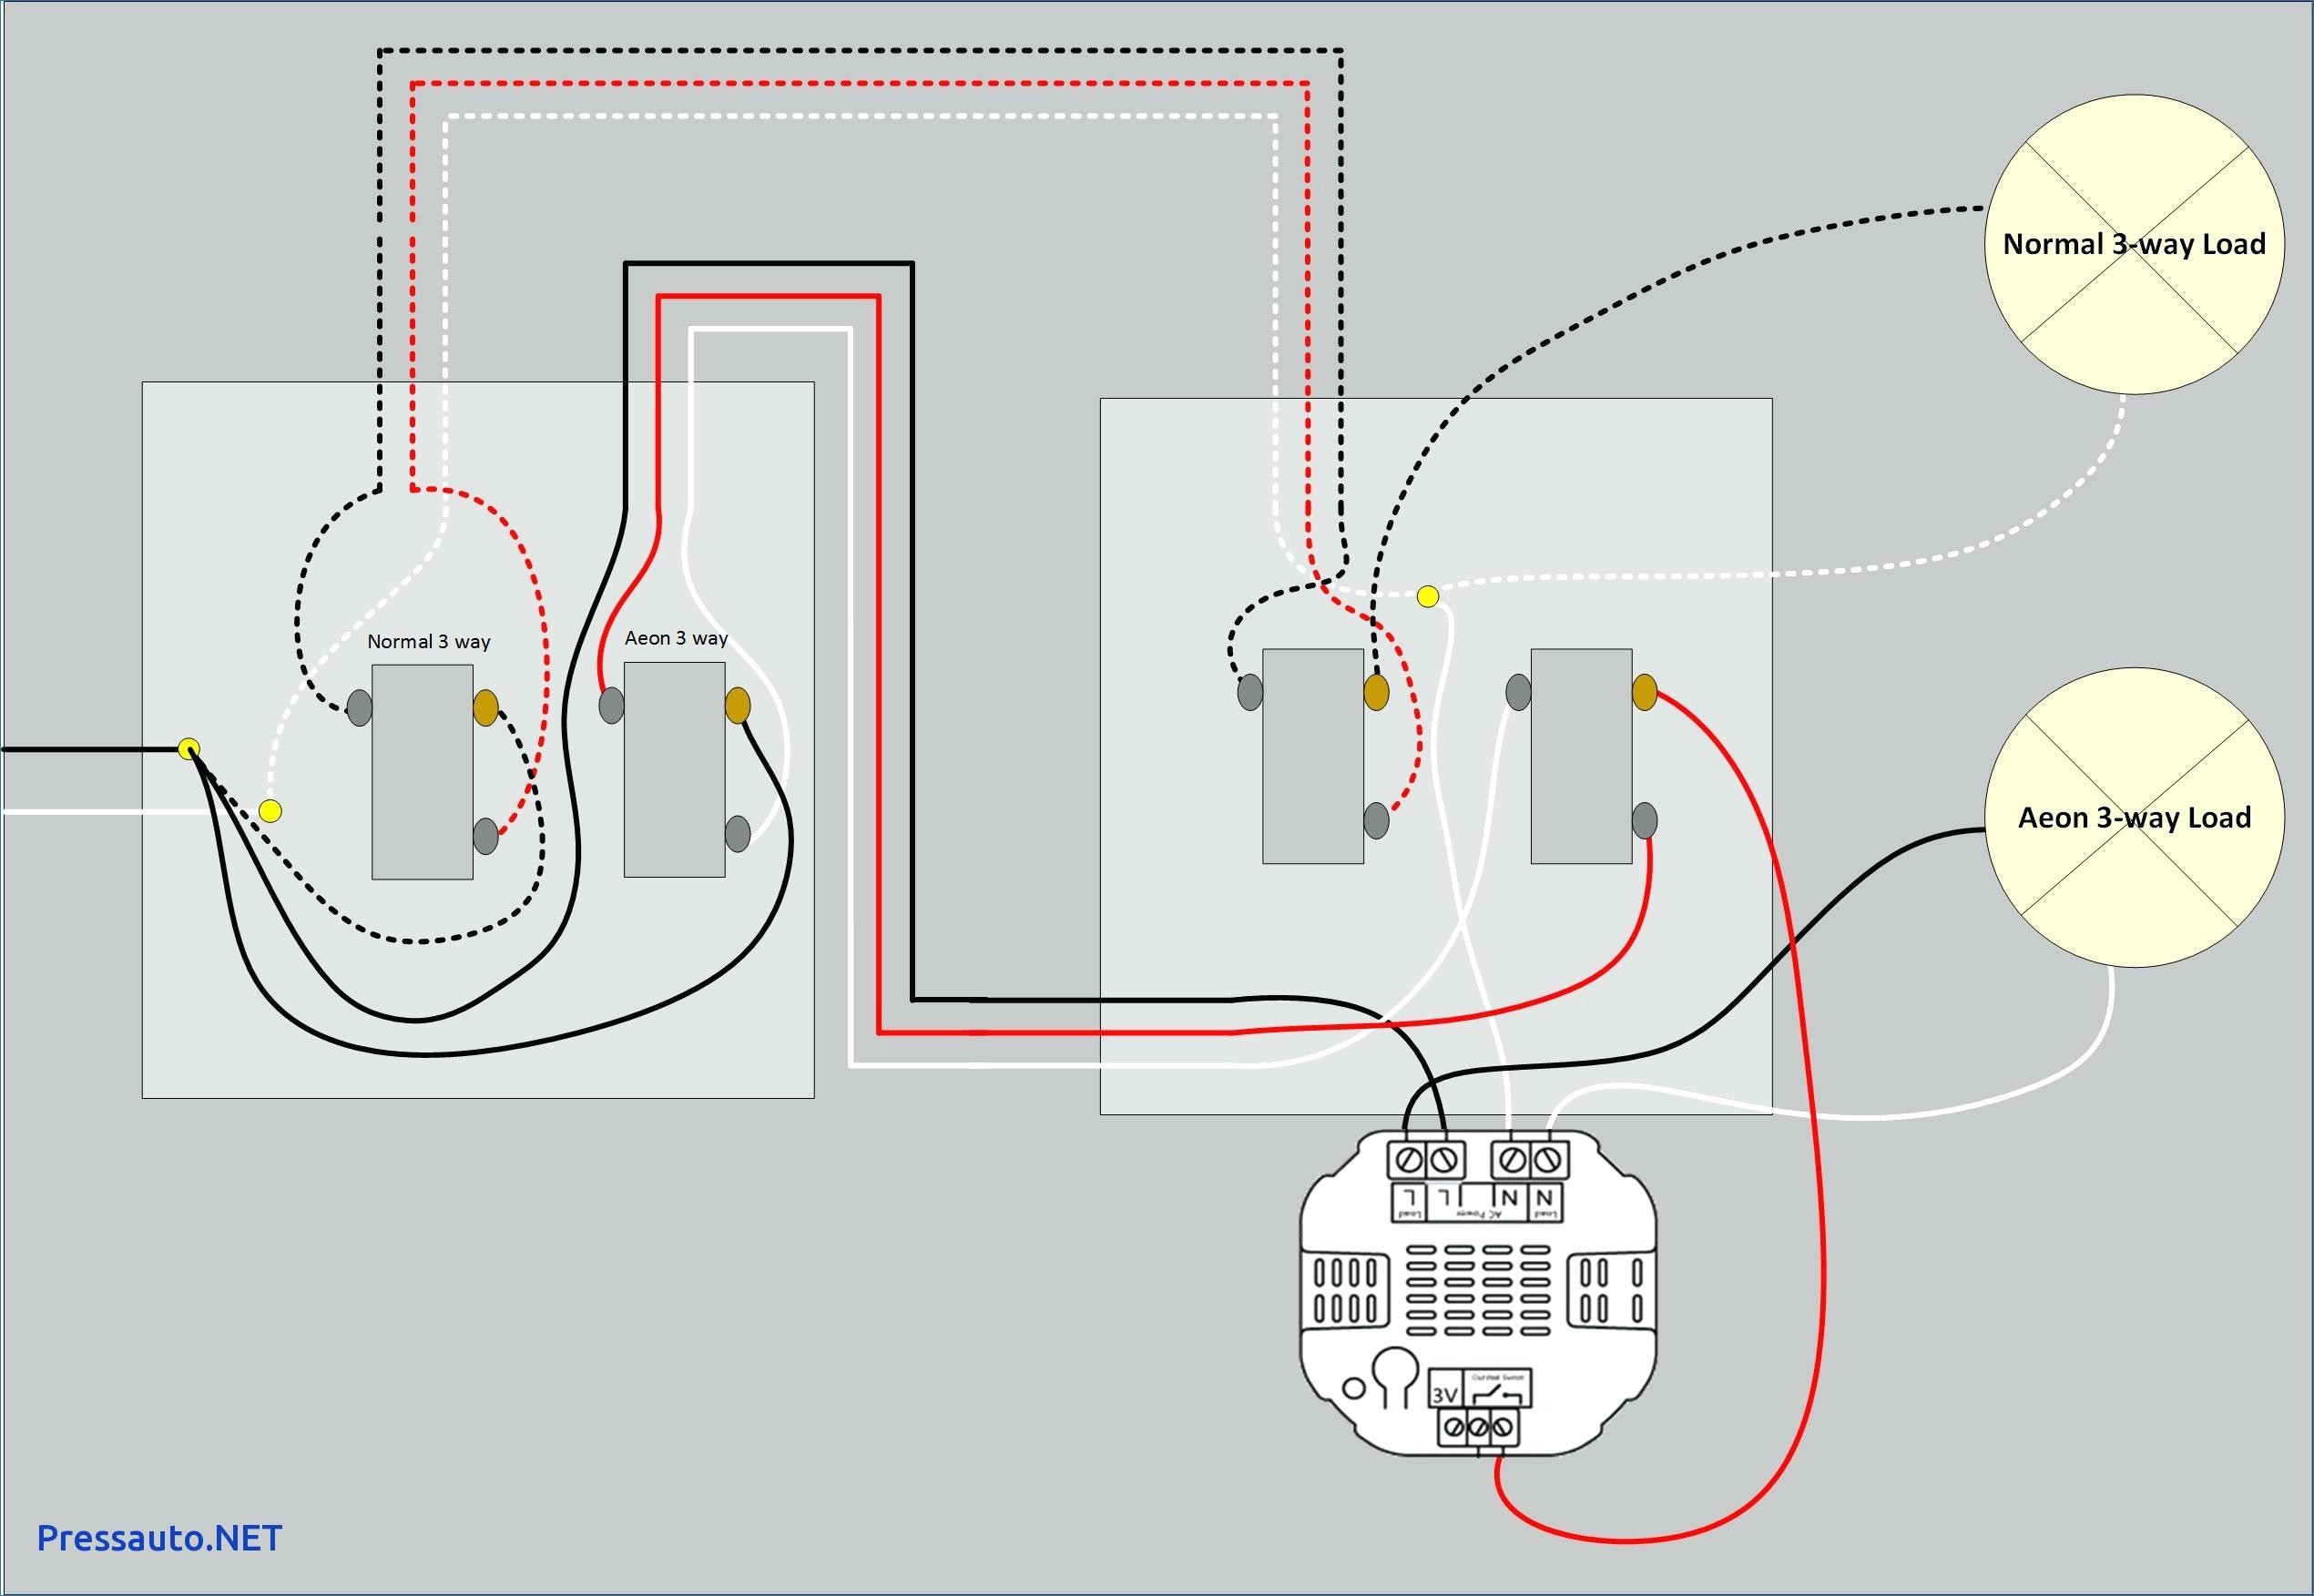 2 way wiring diagram wiring diagram image wiring diagram for light with two switches best two way light switch connection and 2 wiring asfbconference2016 Gallery